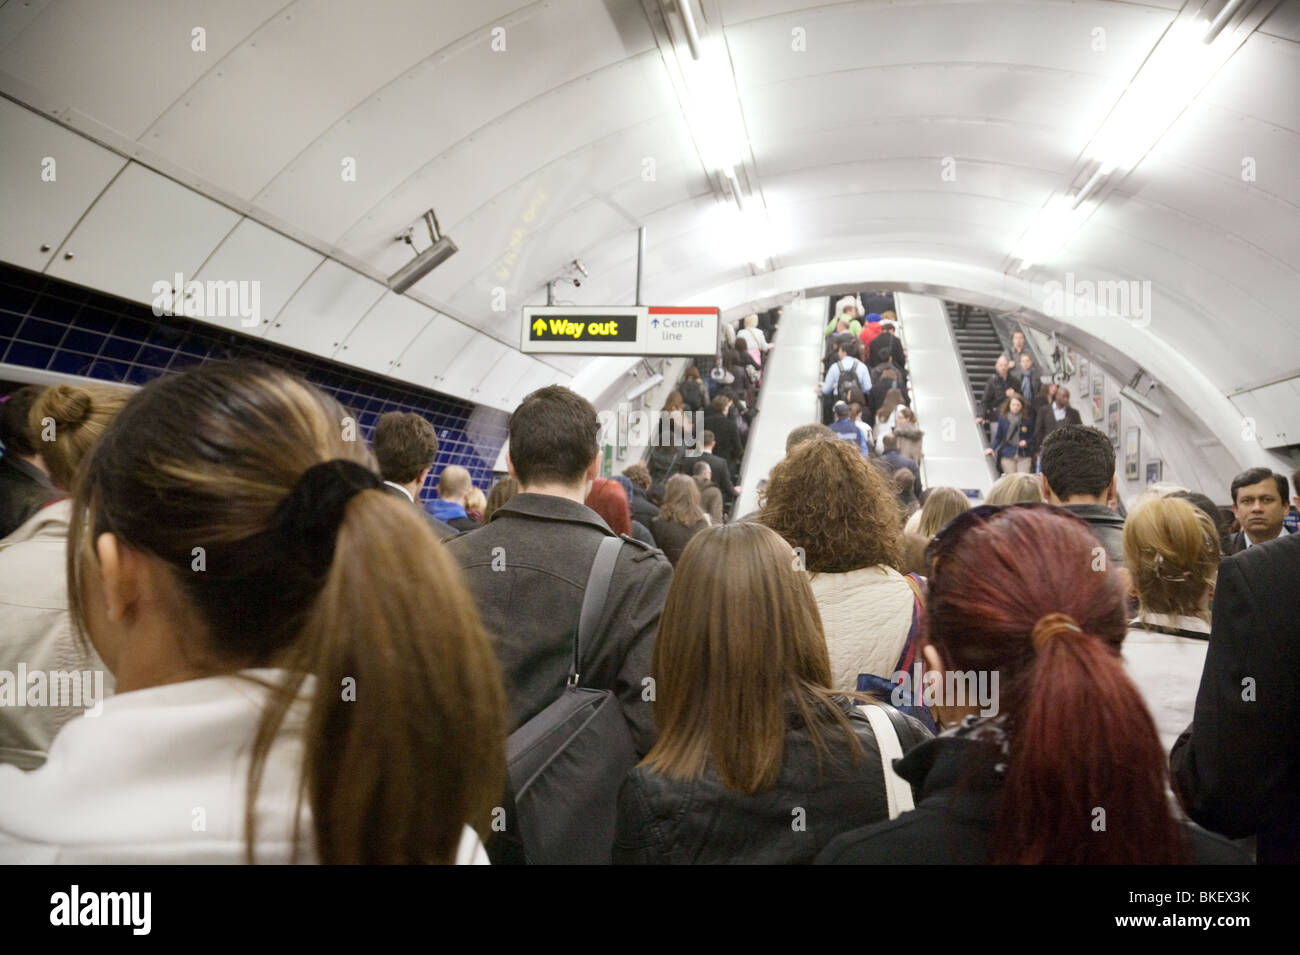 Crowds of commuters in the morning rush hour, The London Underground, London UK - Stock Image